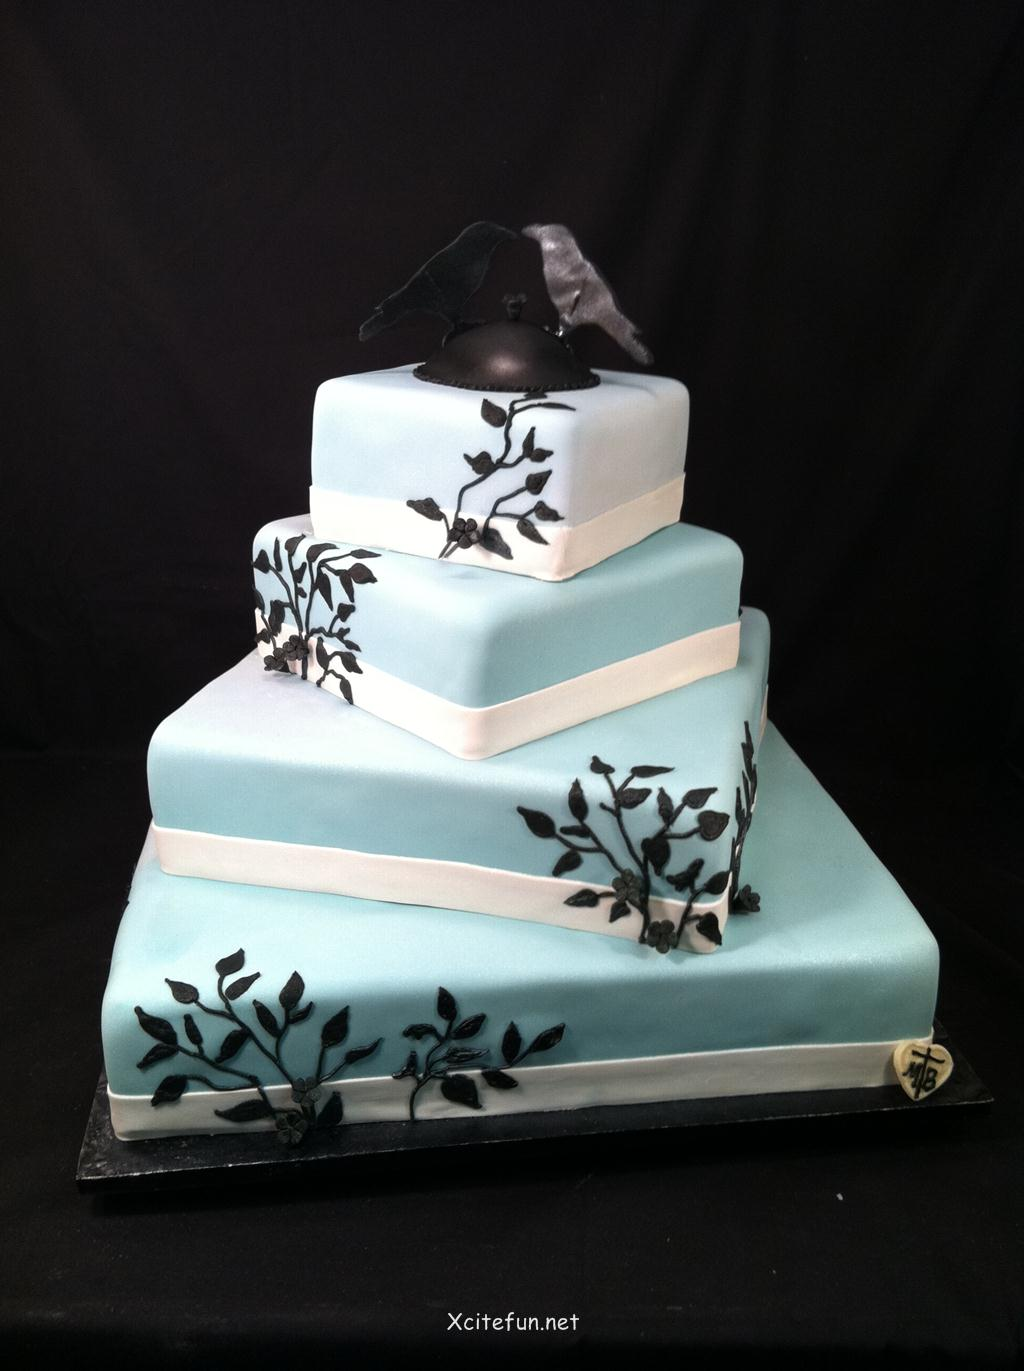 Cake Decorating Ideas For Wedding Simple : Wedding Cakes - Decorating Ideas